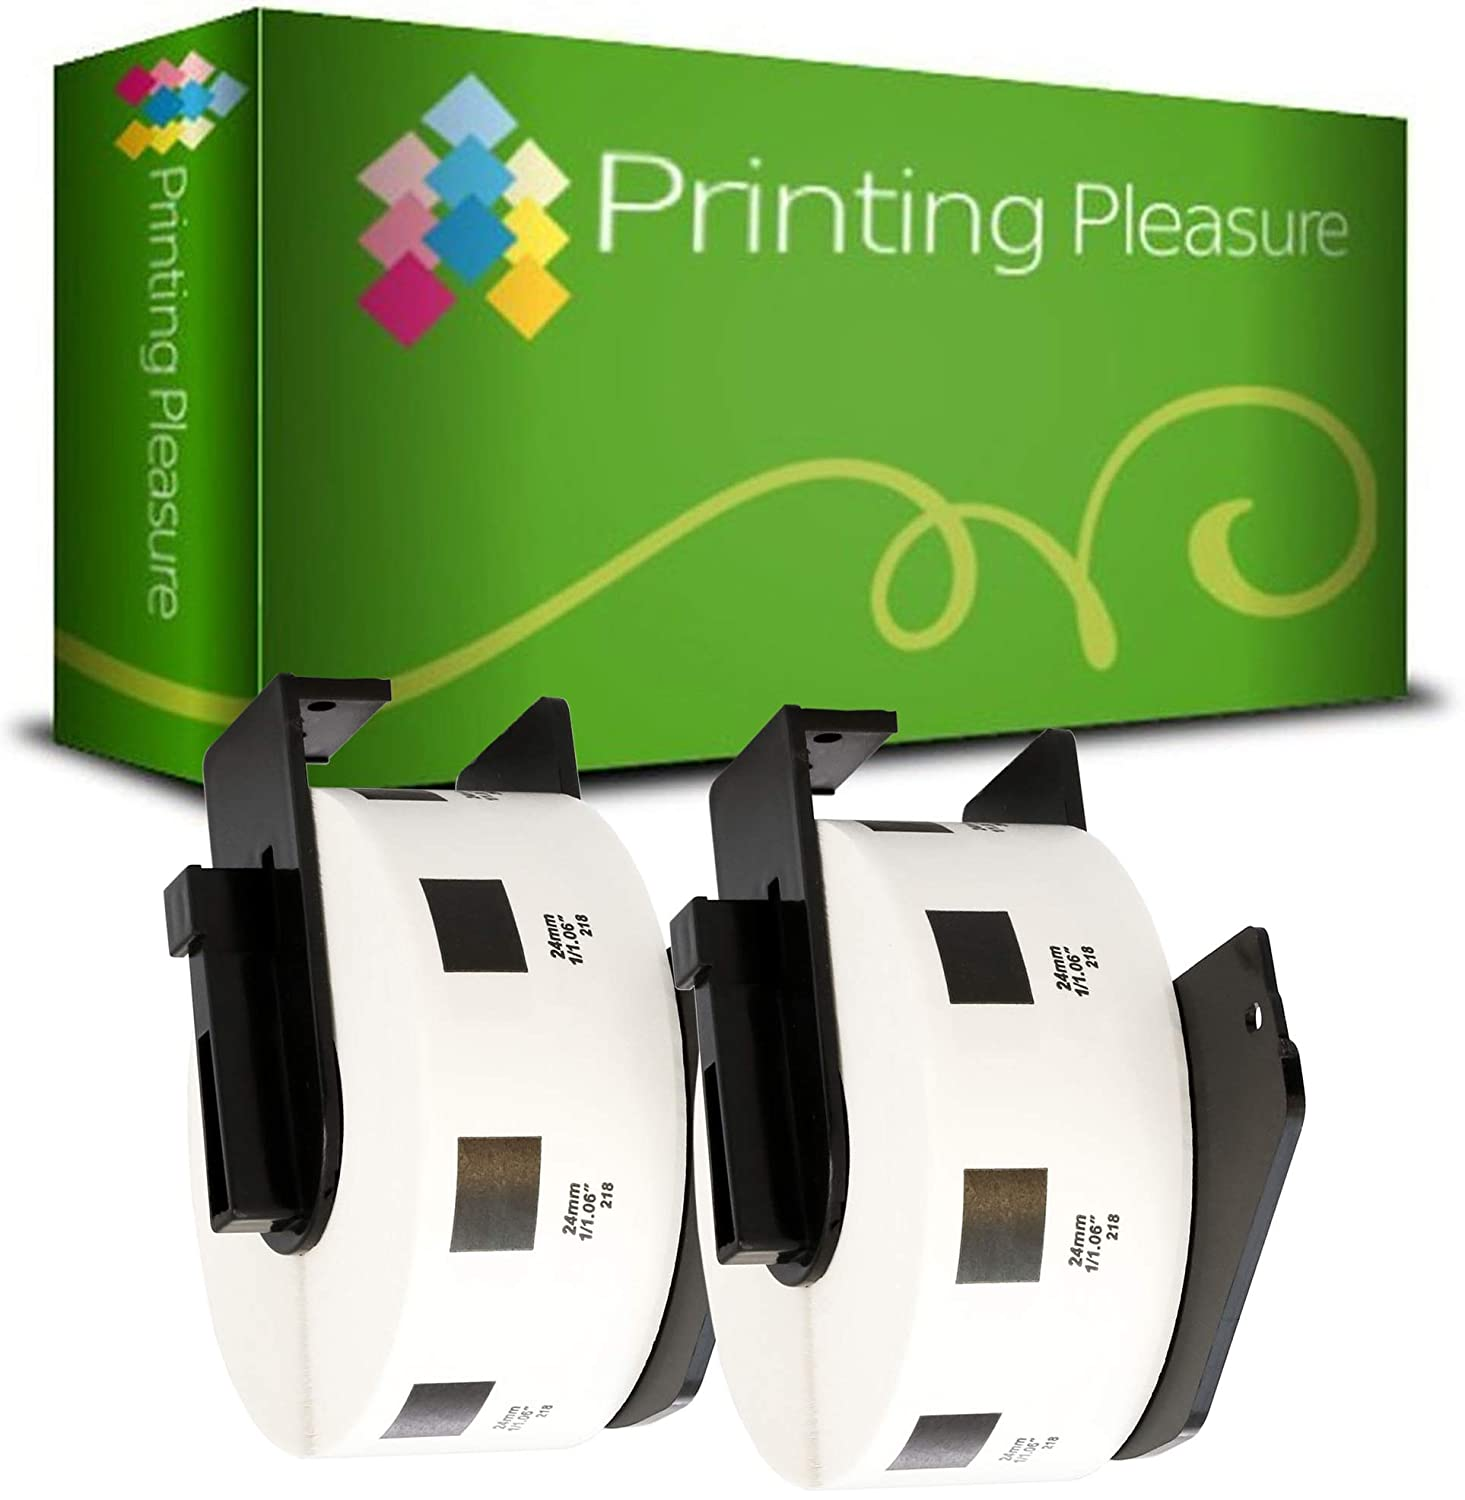 Thermal Paper Roll Printing Pleasure DK22205 Continuous Address Labels compatible with Brother P-Touch QL-500 QL-550 QL-570 QL-700 QL-720 QL-800 QL-810 QL-820 QL-1050 QL-1100 QL-1110 62mm x 30.48m